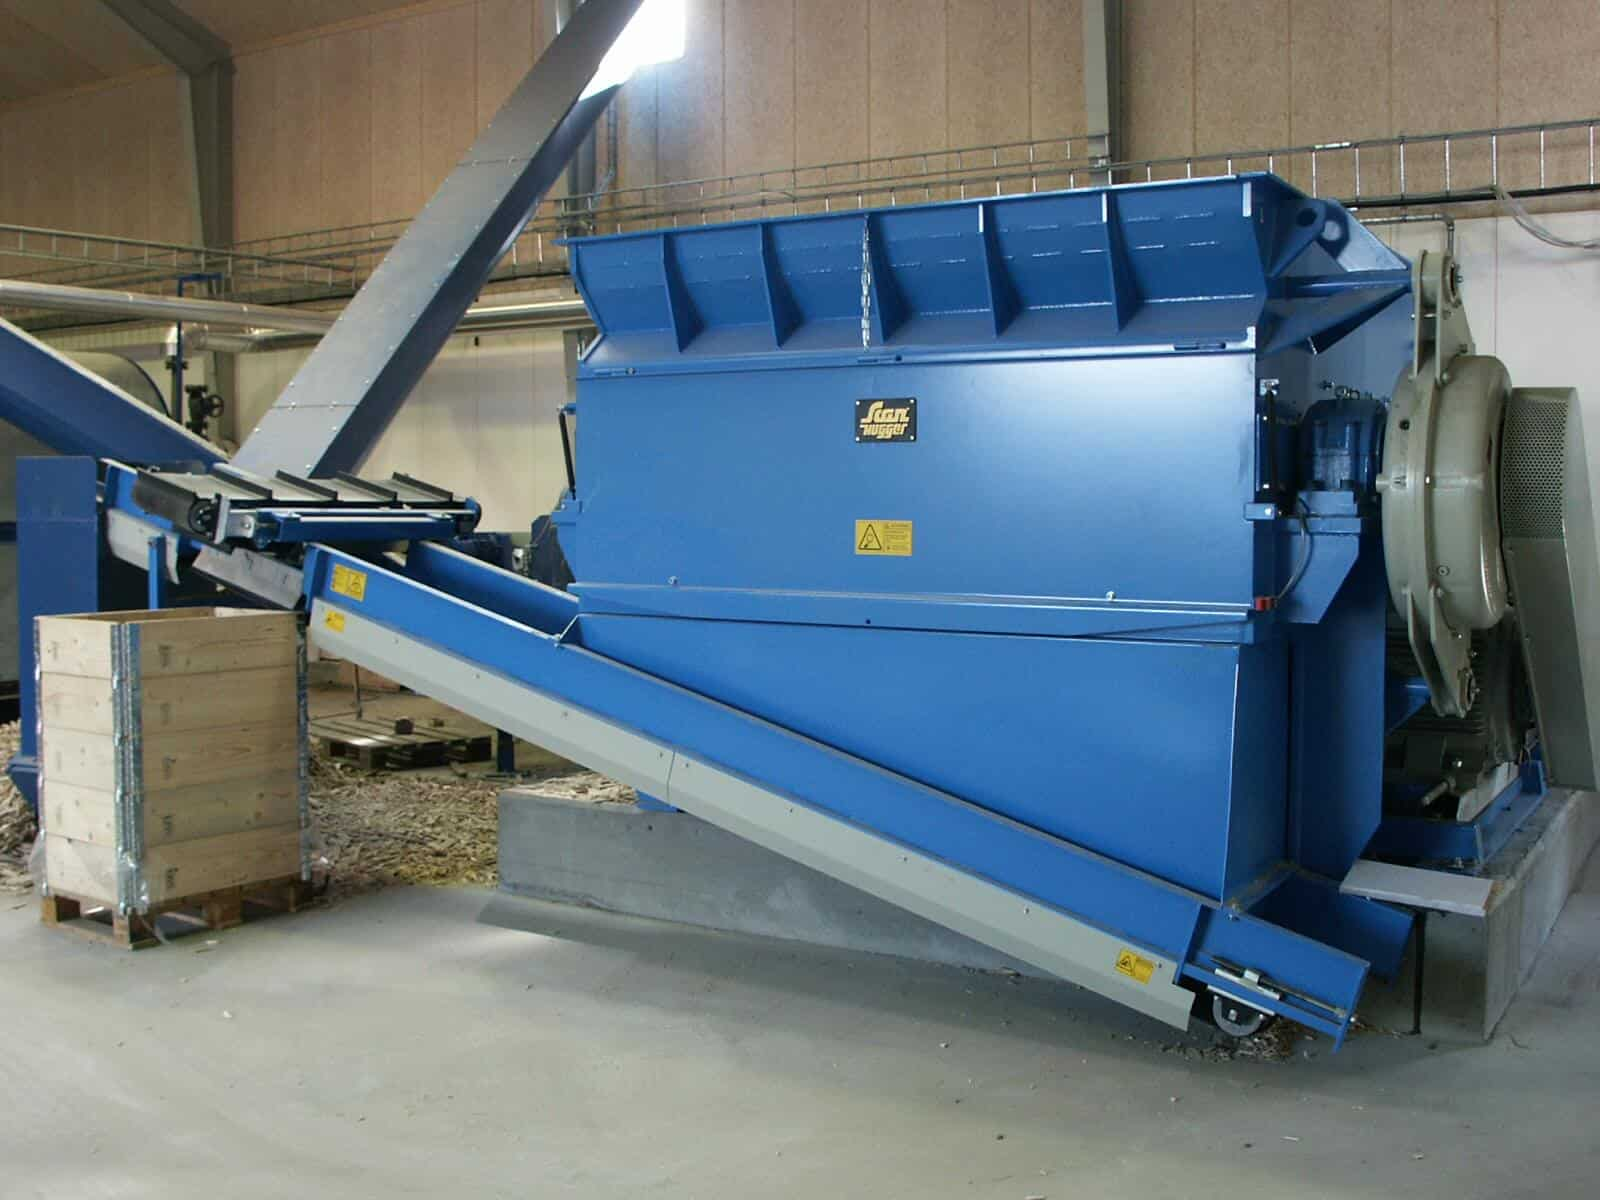 Scanhugger wood shredder with band conveyor and overband magnet for removal of metal